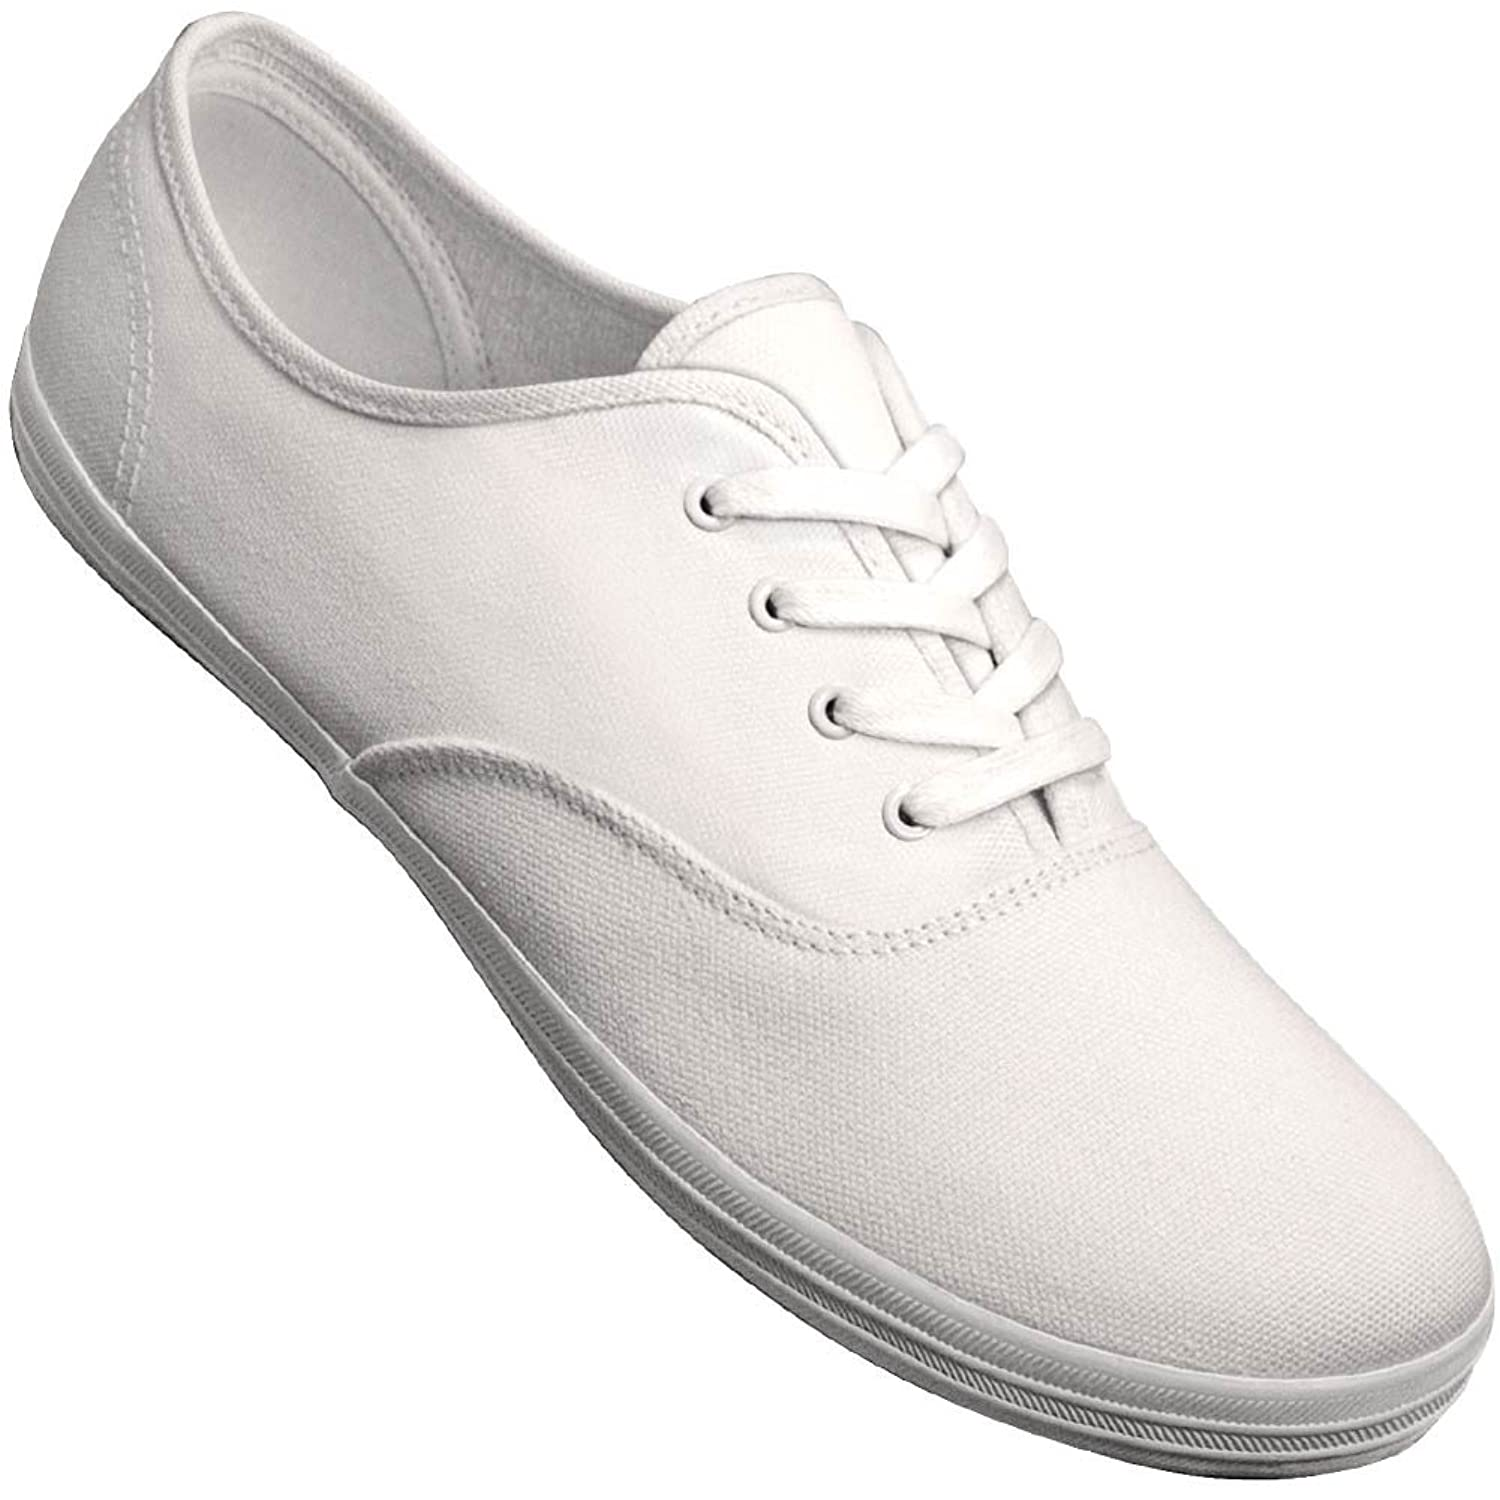 1950s Mens Shoes: Saddle Shoes, Boots, Greaser, Rockabilly Aris Allen Mens White Classic Canvas Dance Sneaker $48.95 AT vintagedancer.com